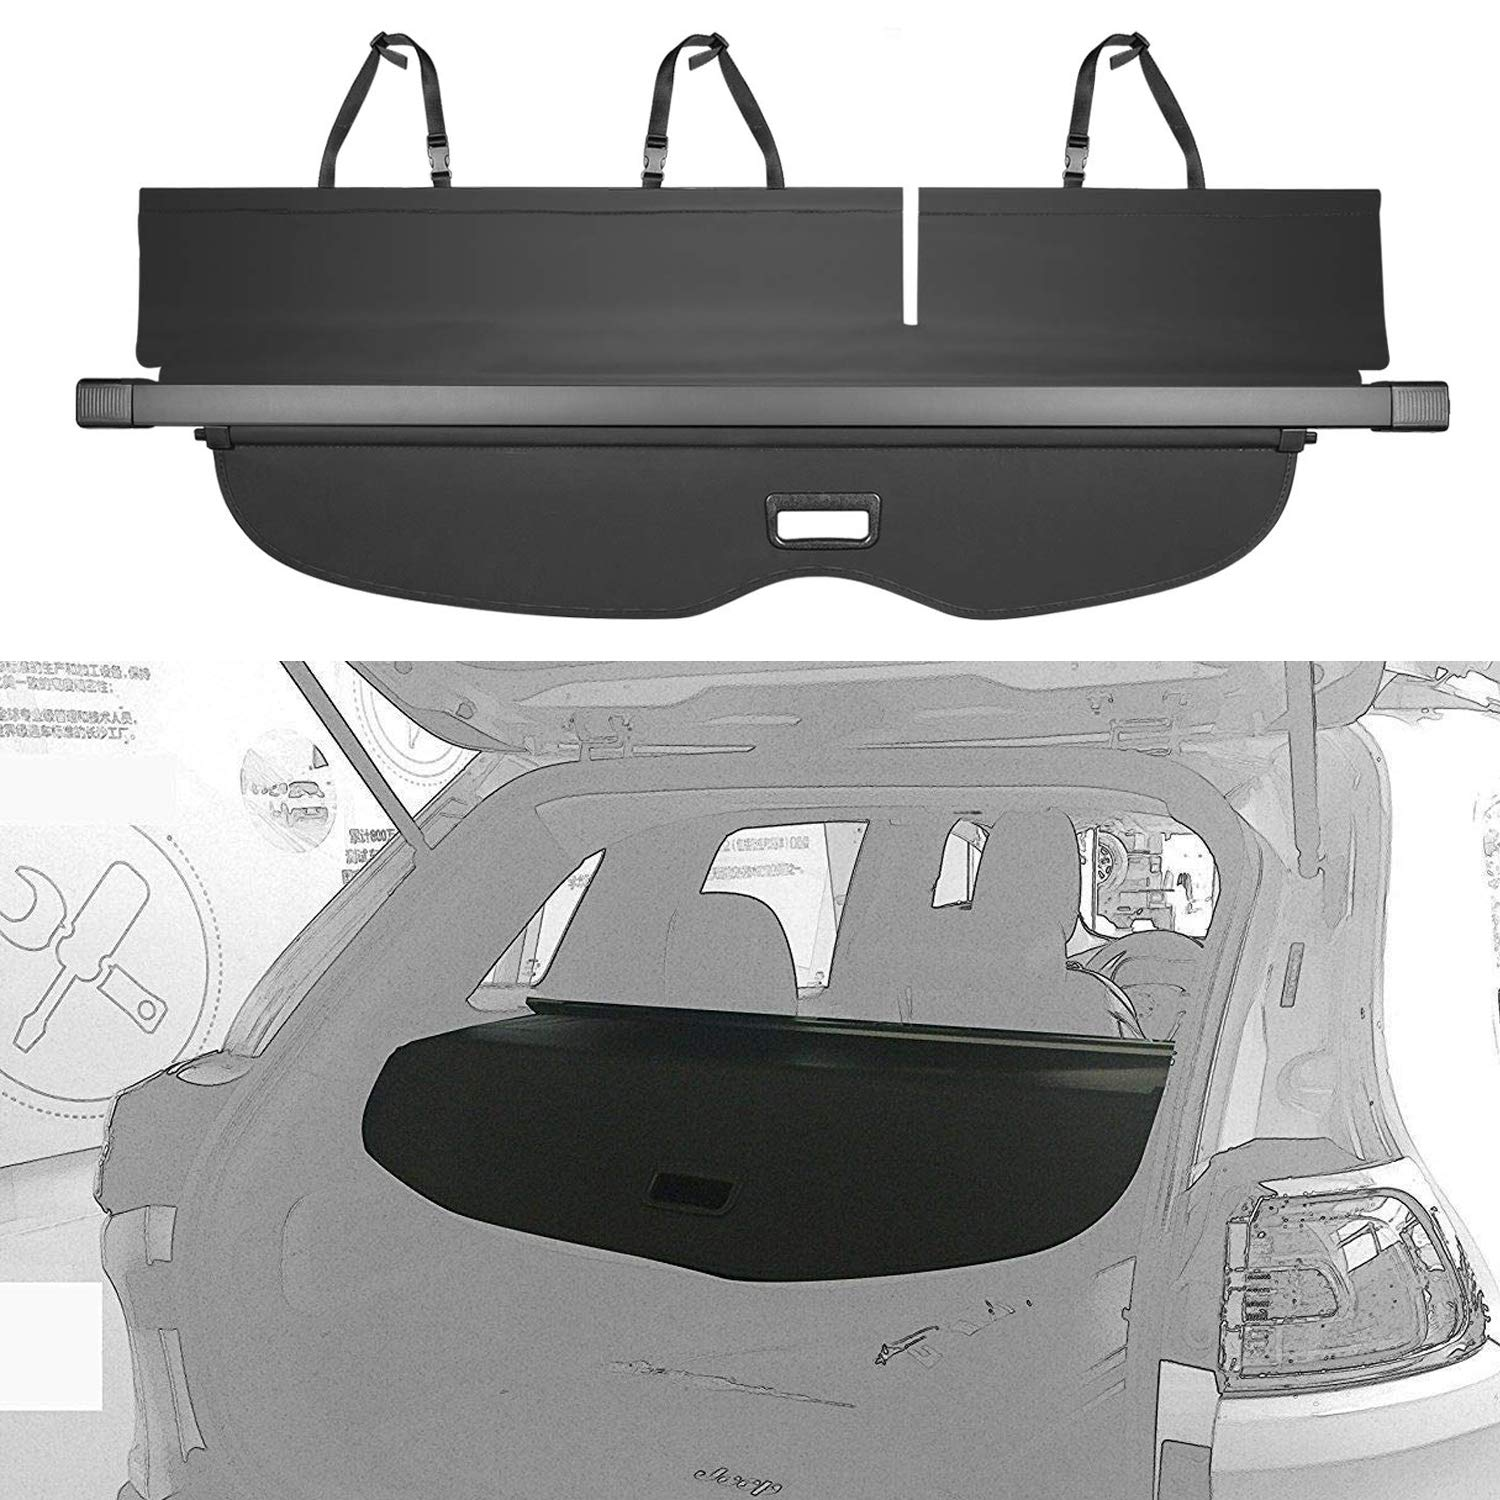 E-cowlboy Cargo Cover for 11-19Jeep Grand Cherokee Trunk Shielding Shade Black(Updated Version:There is no gap between the back seats and the cover,Not Fit for Jeep Cherokee)